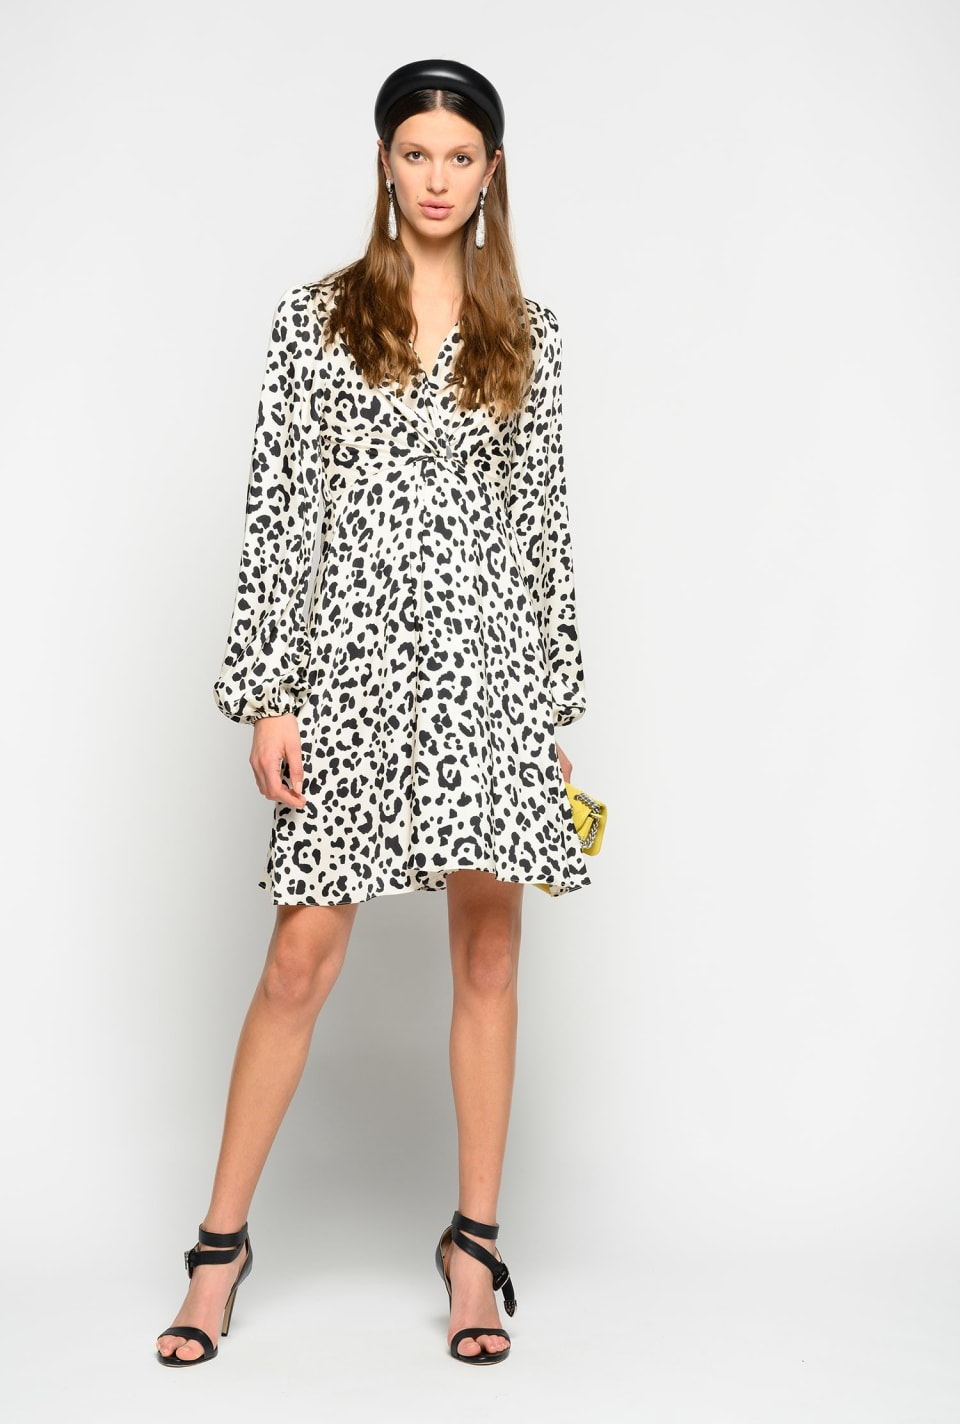 Faded spotted print dress - Pinko